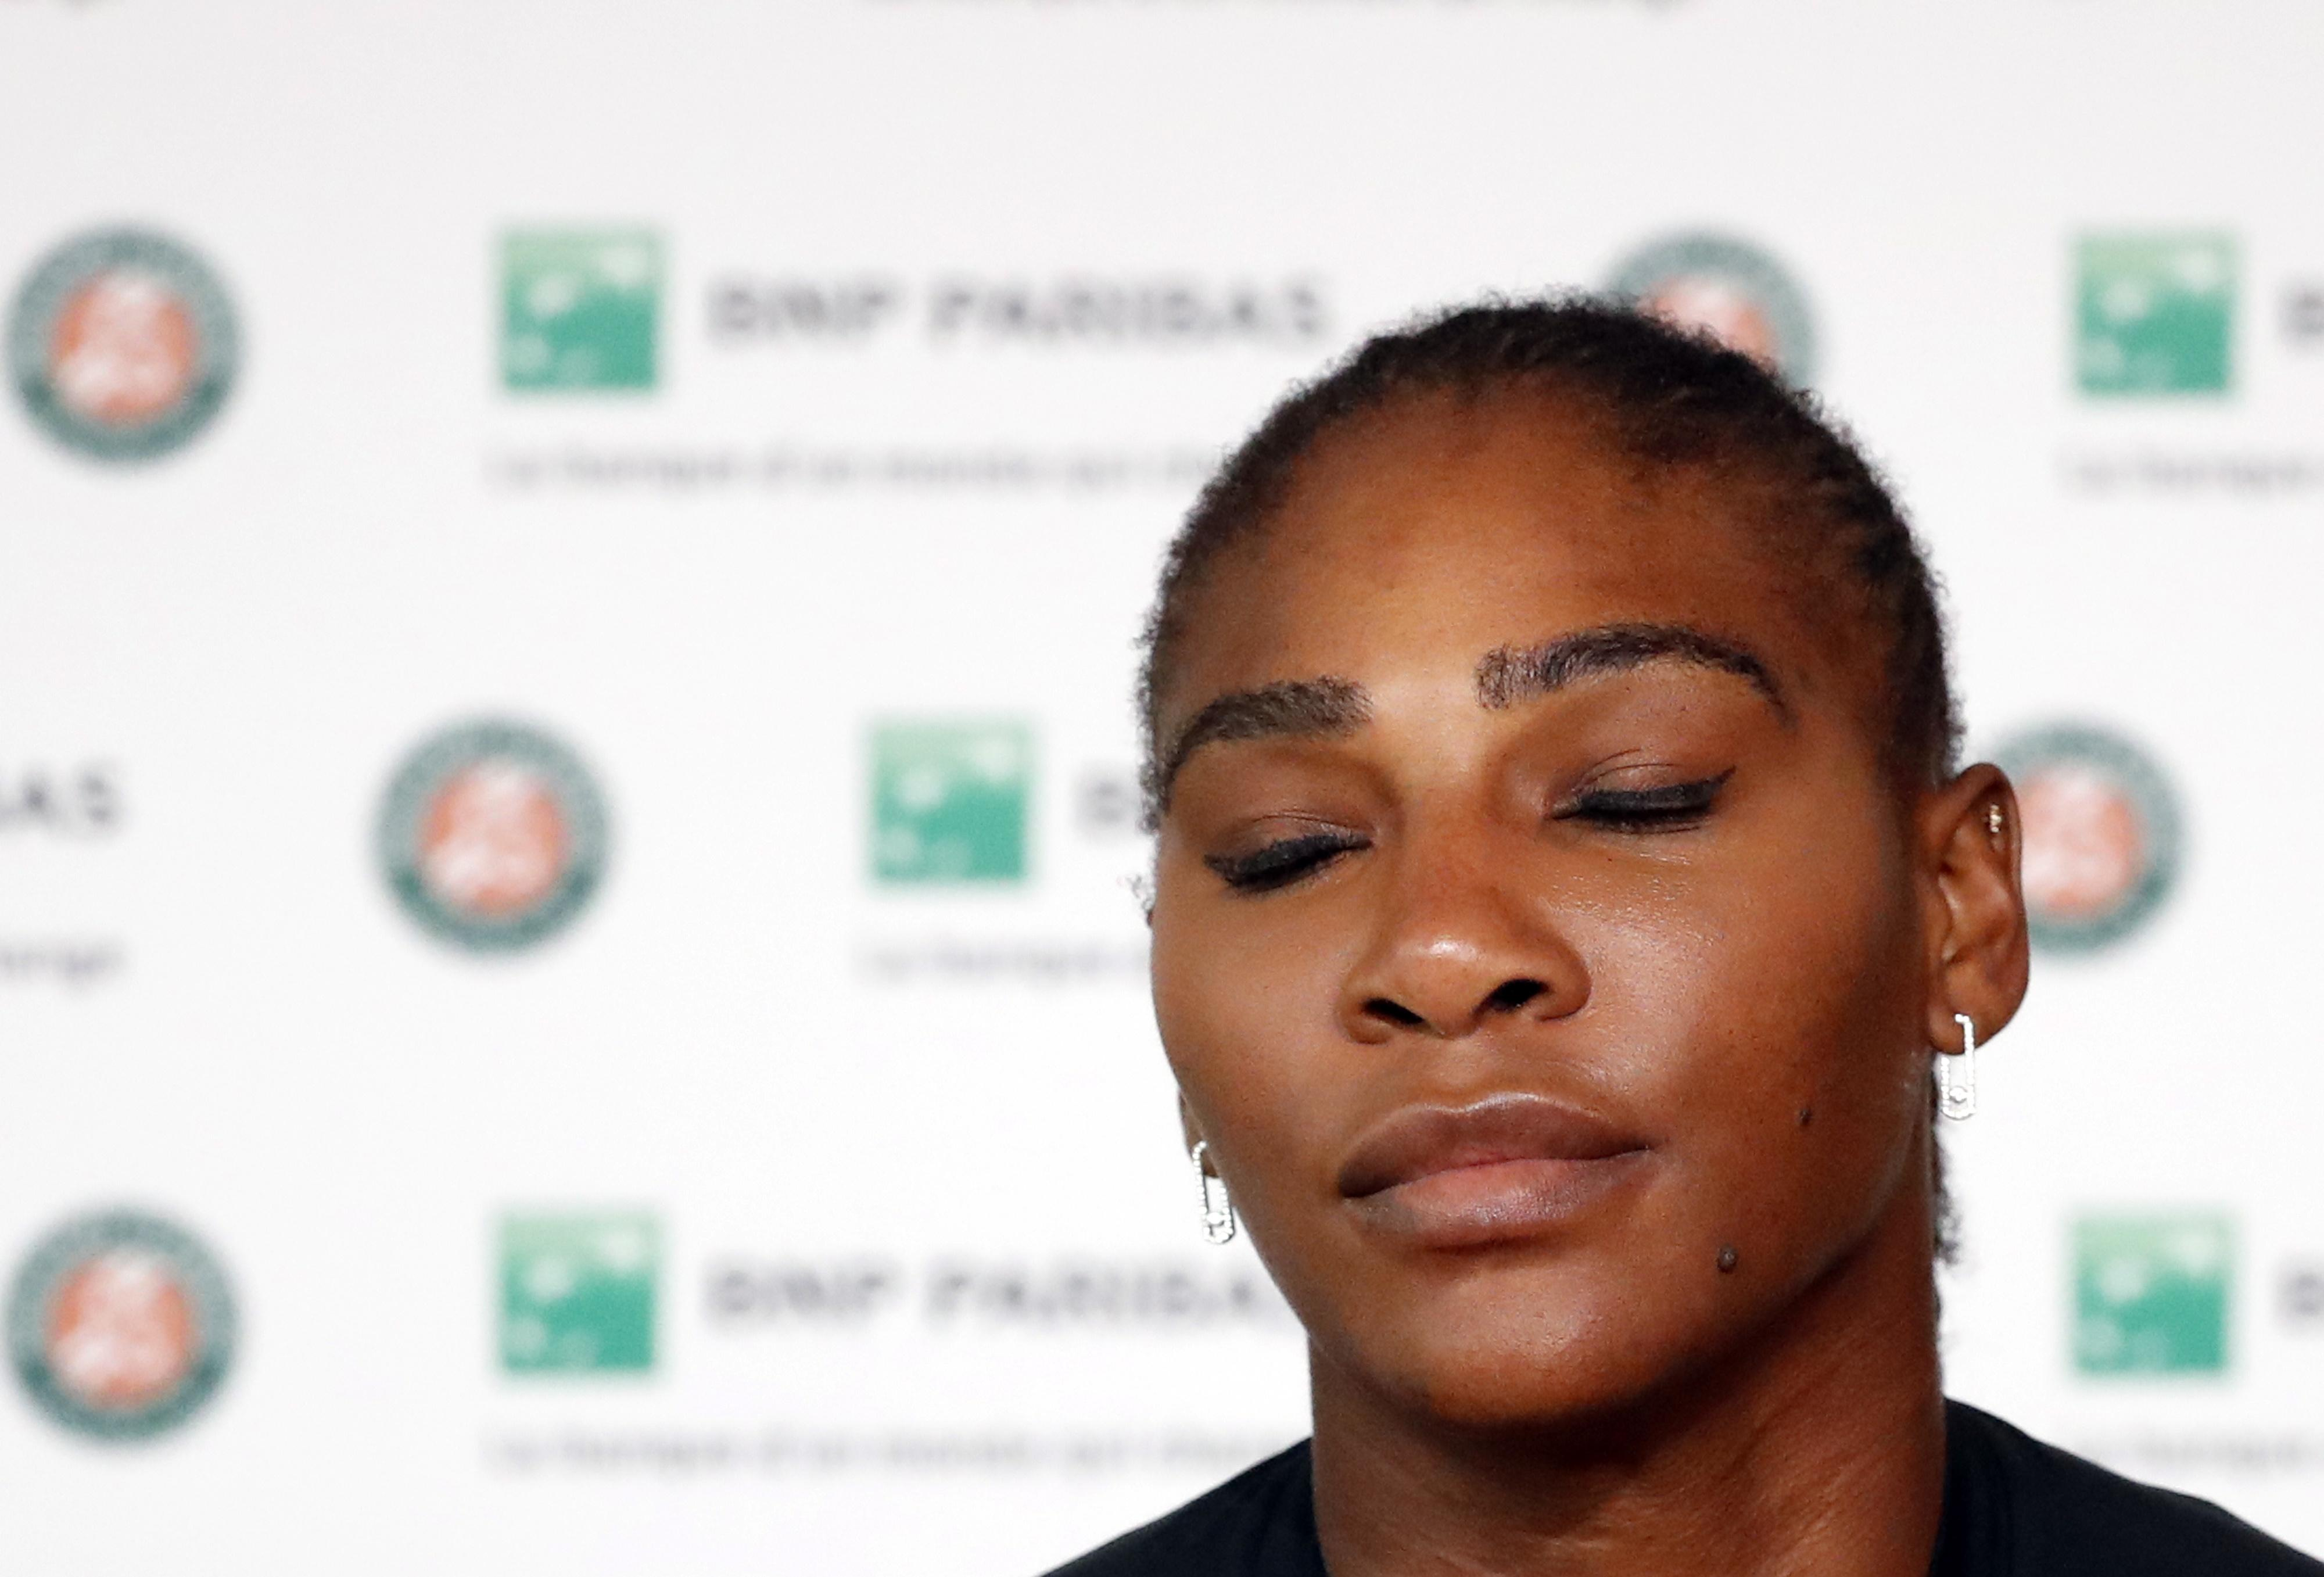 Serena Williams expressed her disappointment at missing out on the clash